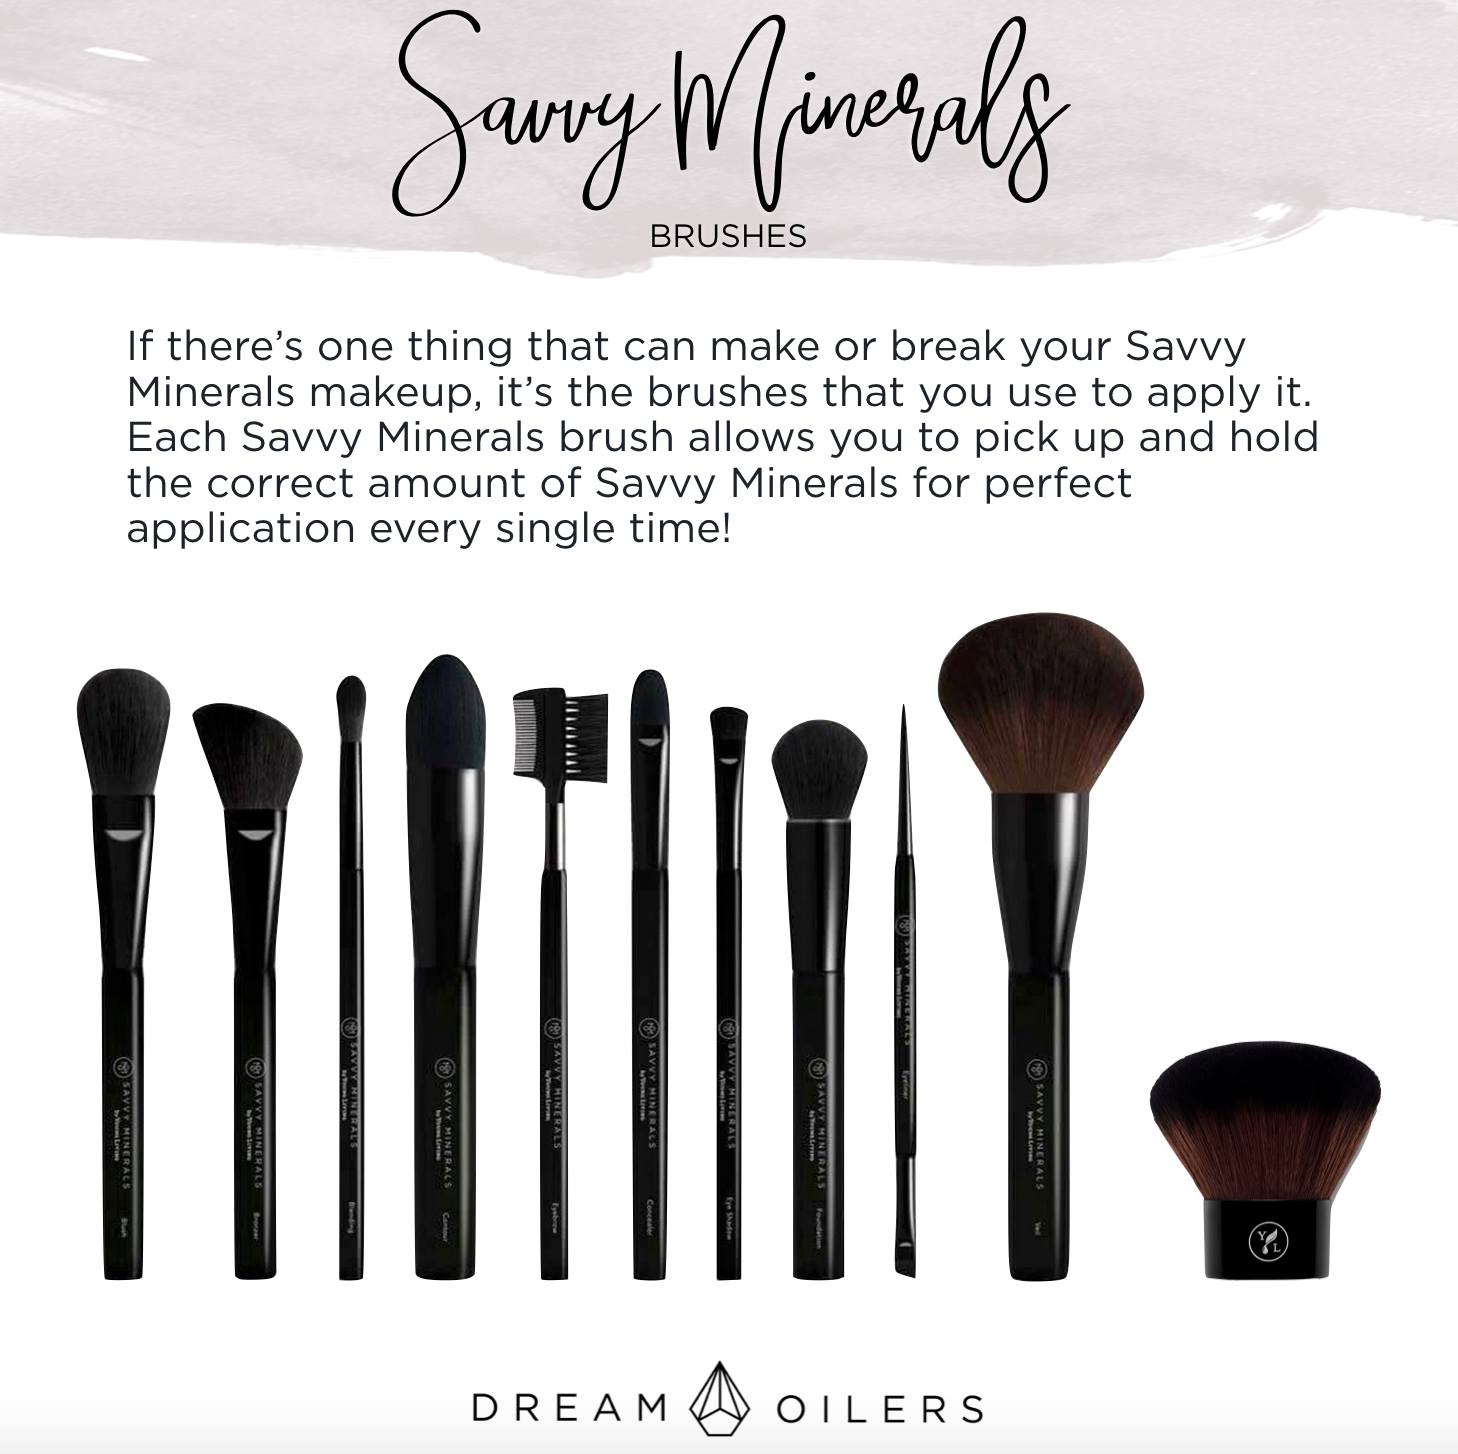 Savvy Minerals Makeup Dream Oilers